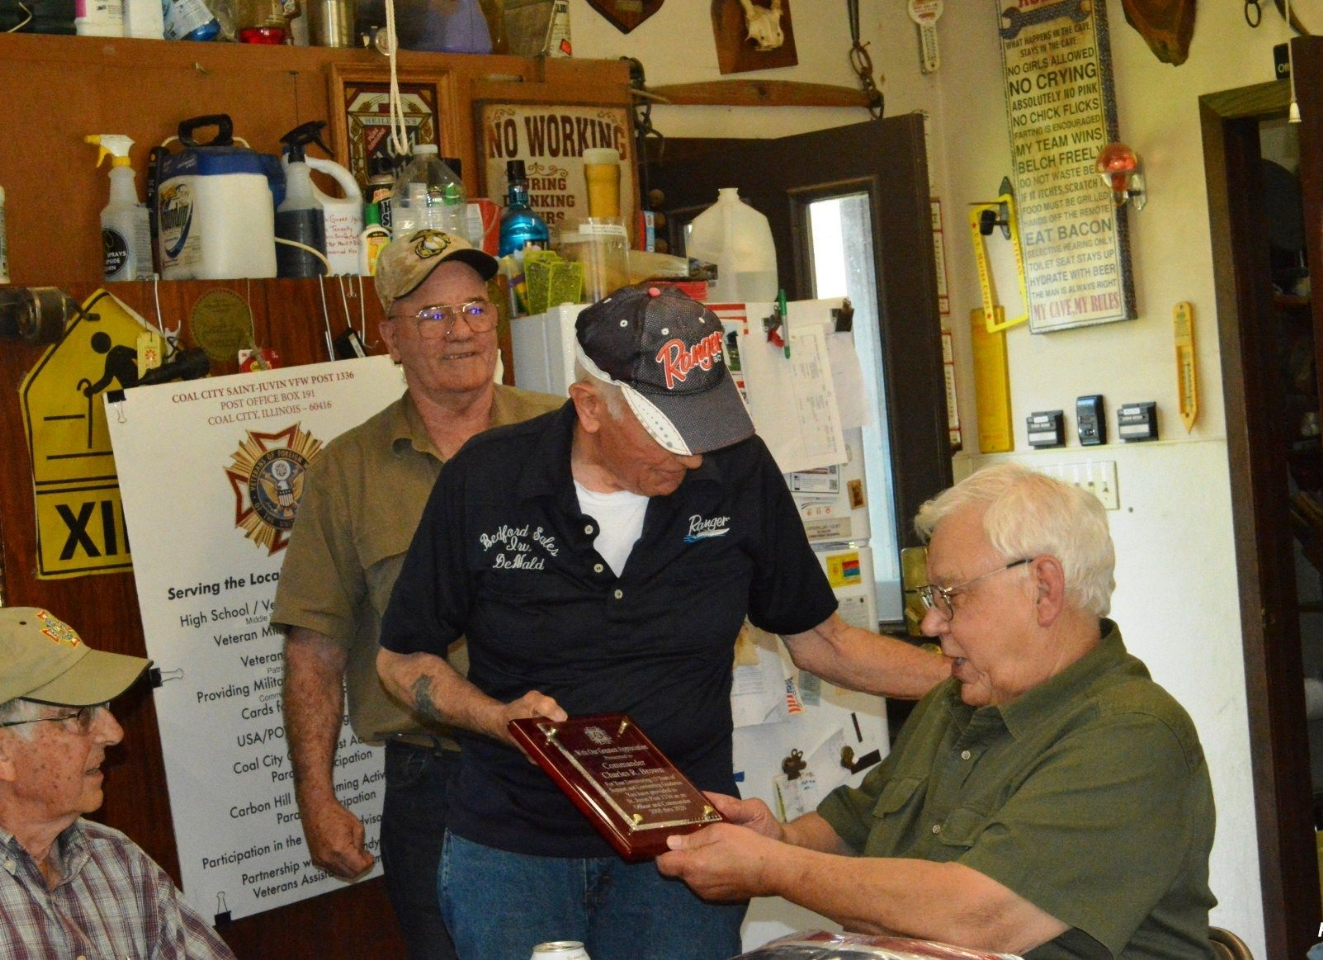 Sr. Vice Commander Irv DeWald presents outgoing Commander Charlie Brown with a plaque commemorating his service to St. Juvin Post.